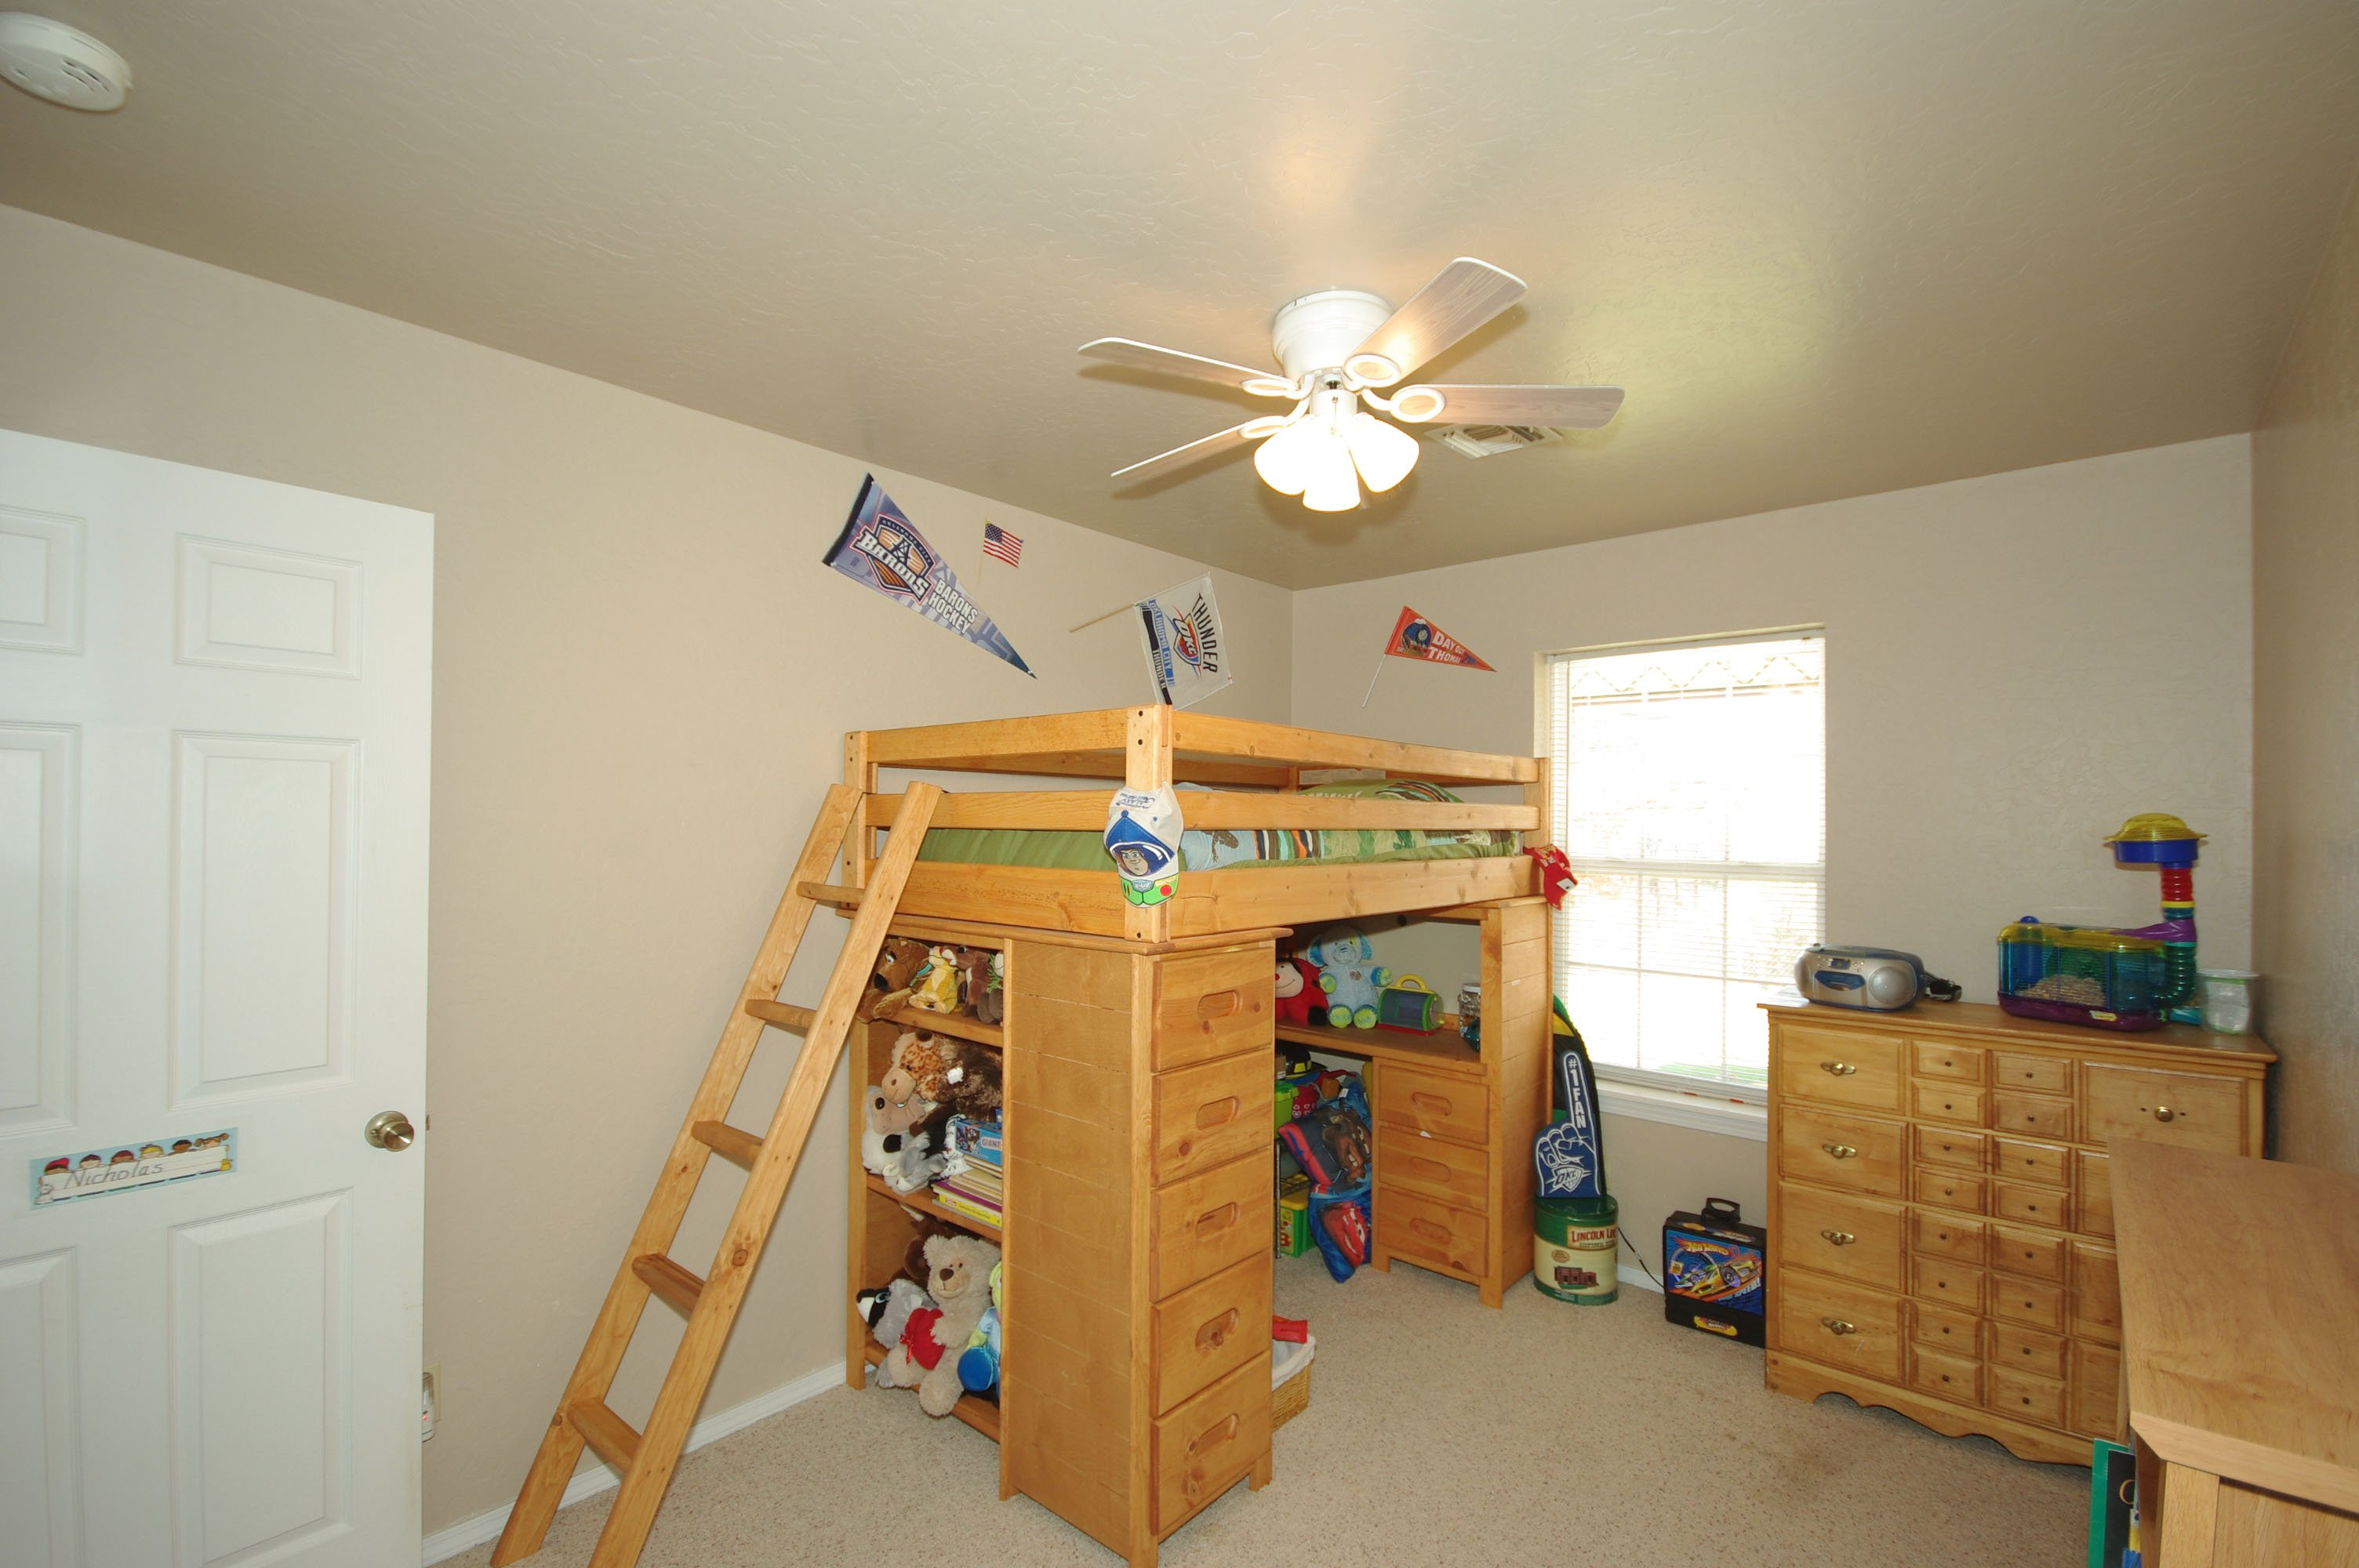 Bunk Beds For Sale In Edmond Ok ShowMeOKC